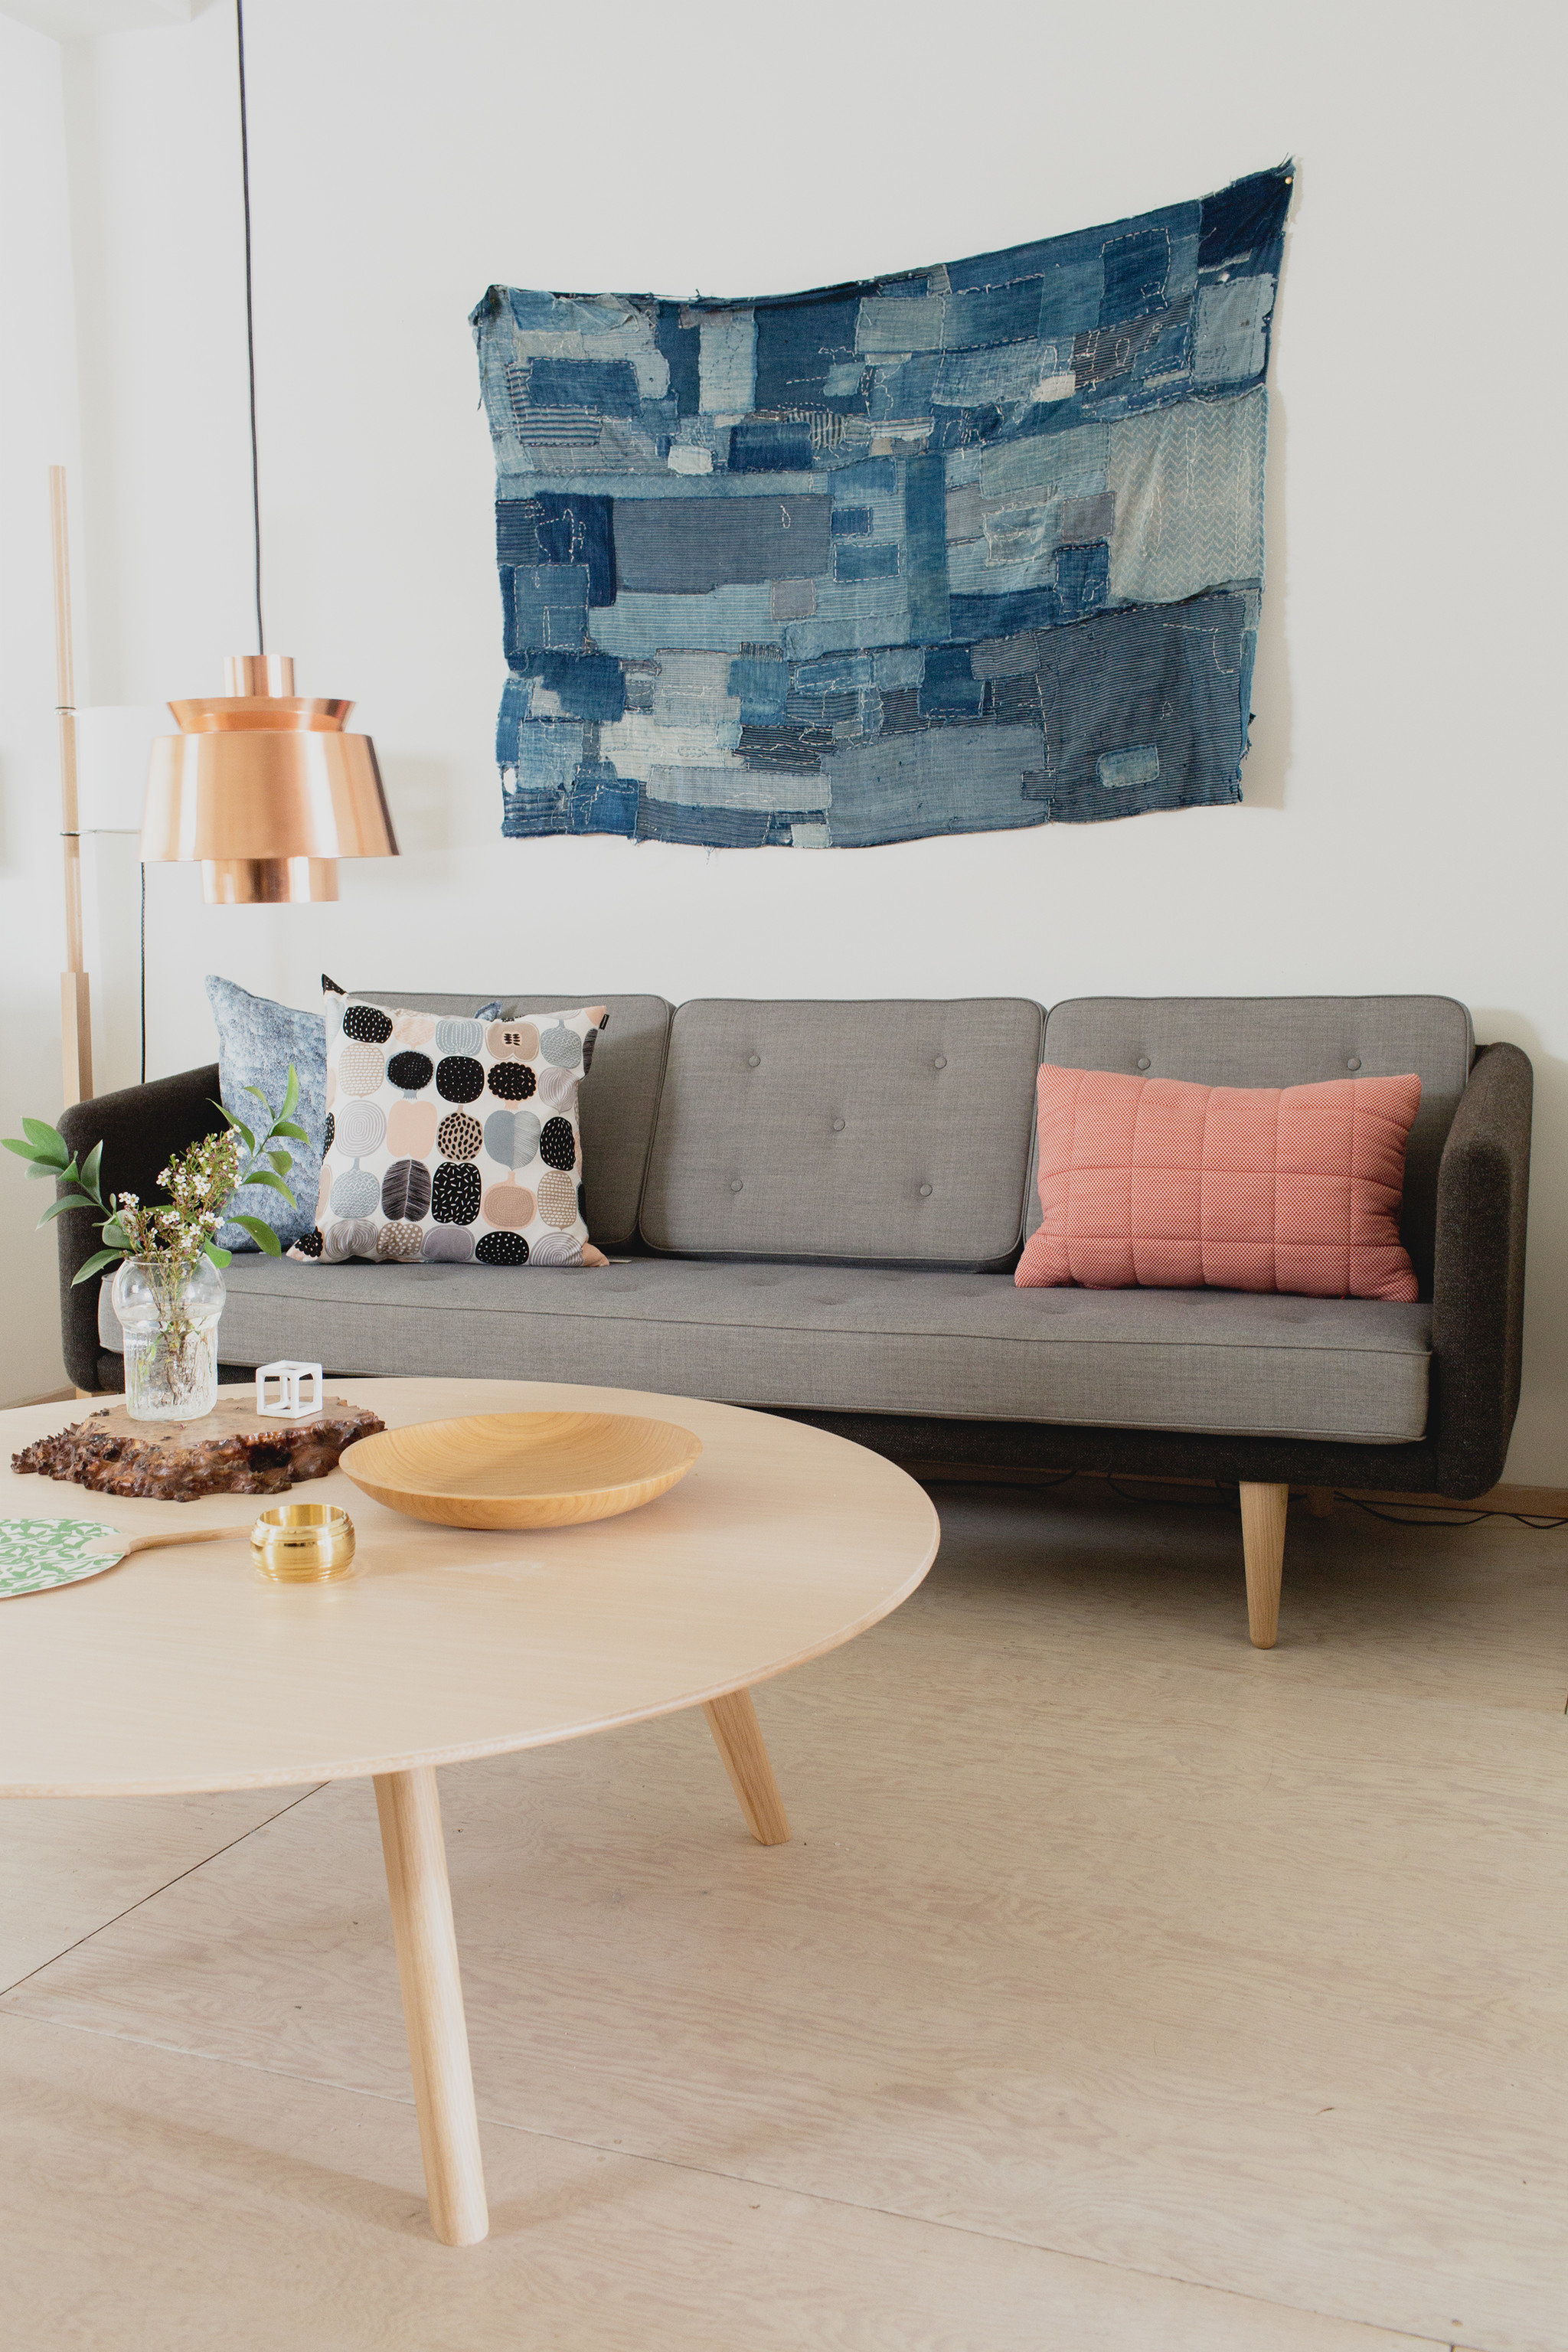 Trip Ideas wall Living indoor floor sofa room furniture living room table seat couch wood interior design bed sheet Design studio couch decorated area tan